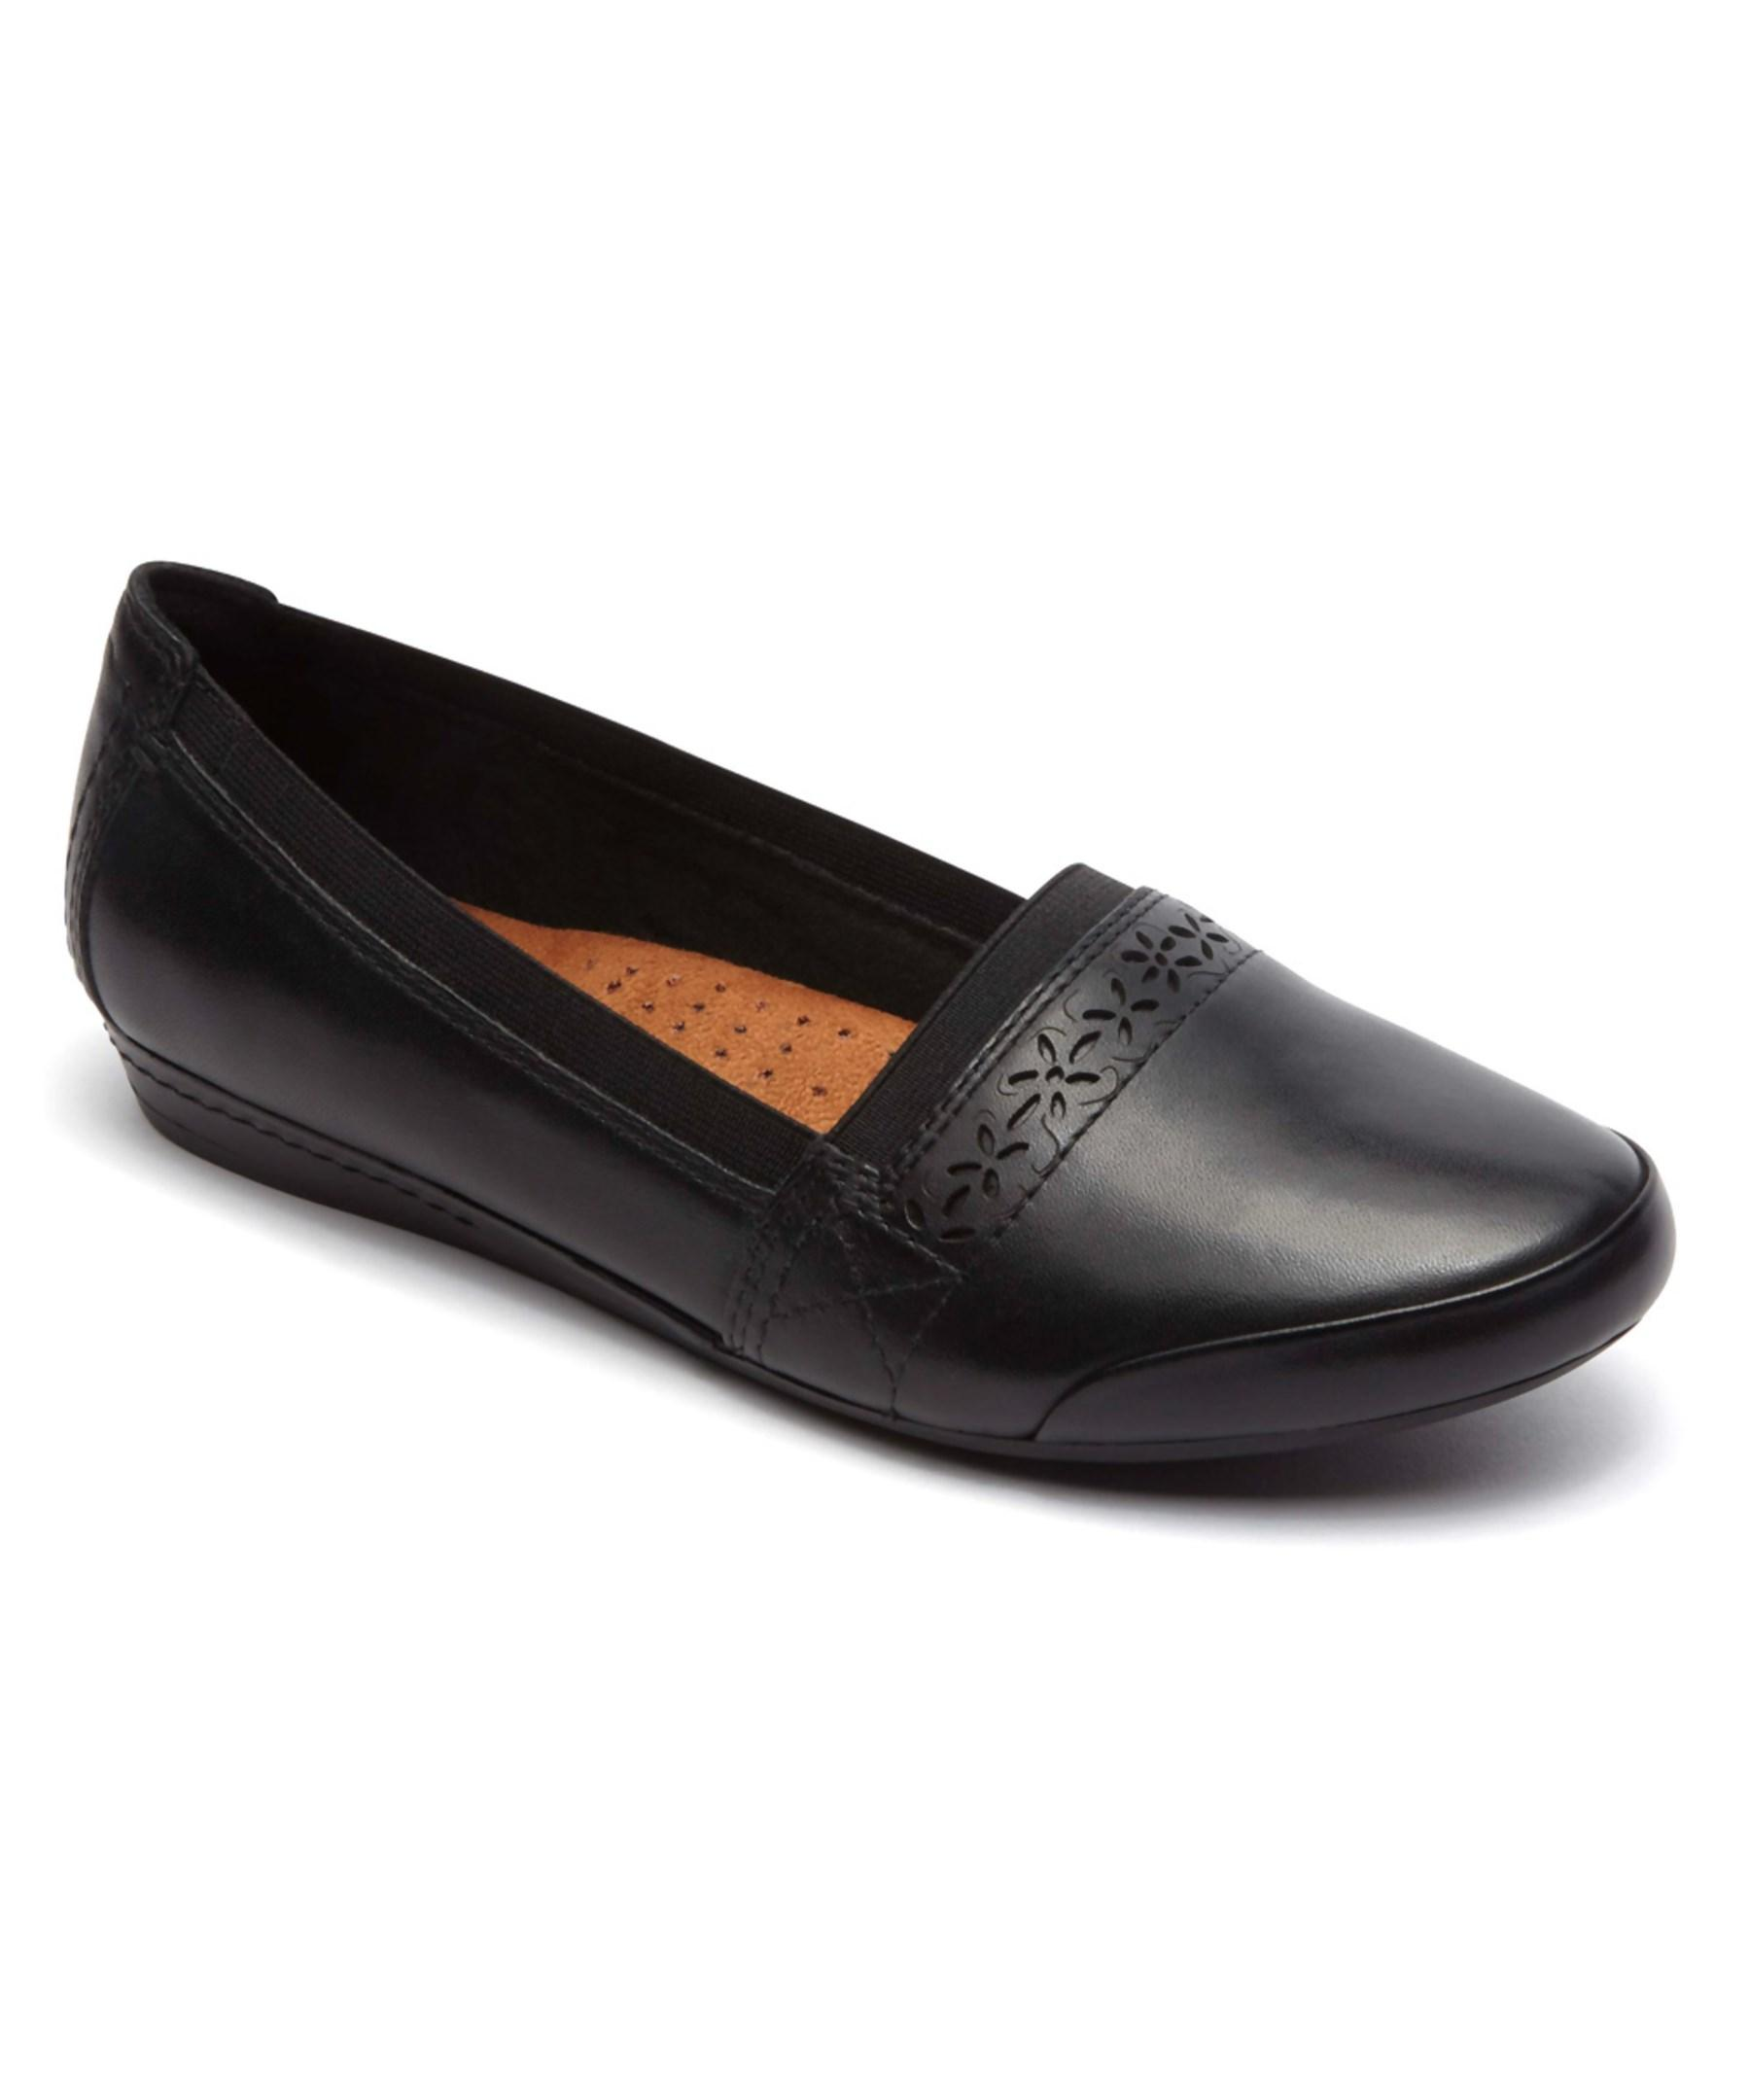 Best Place To Buy Comfortable Work Shoes